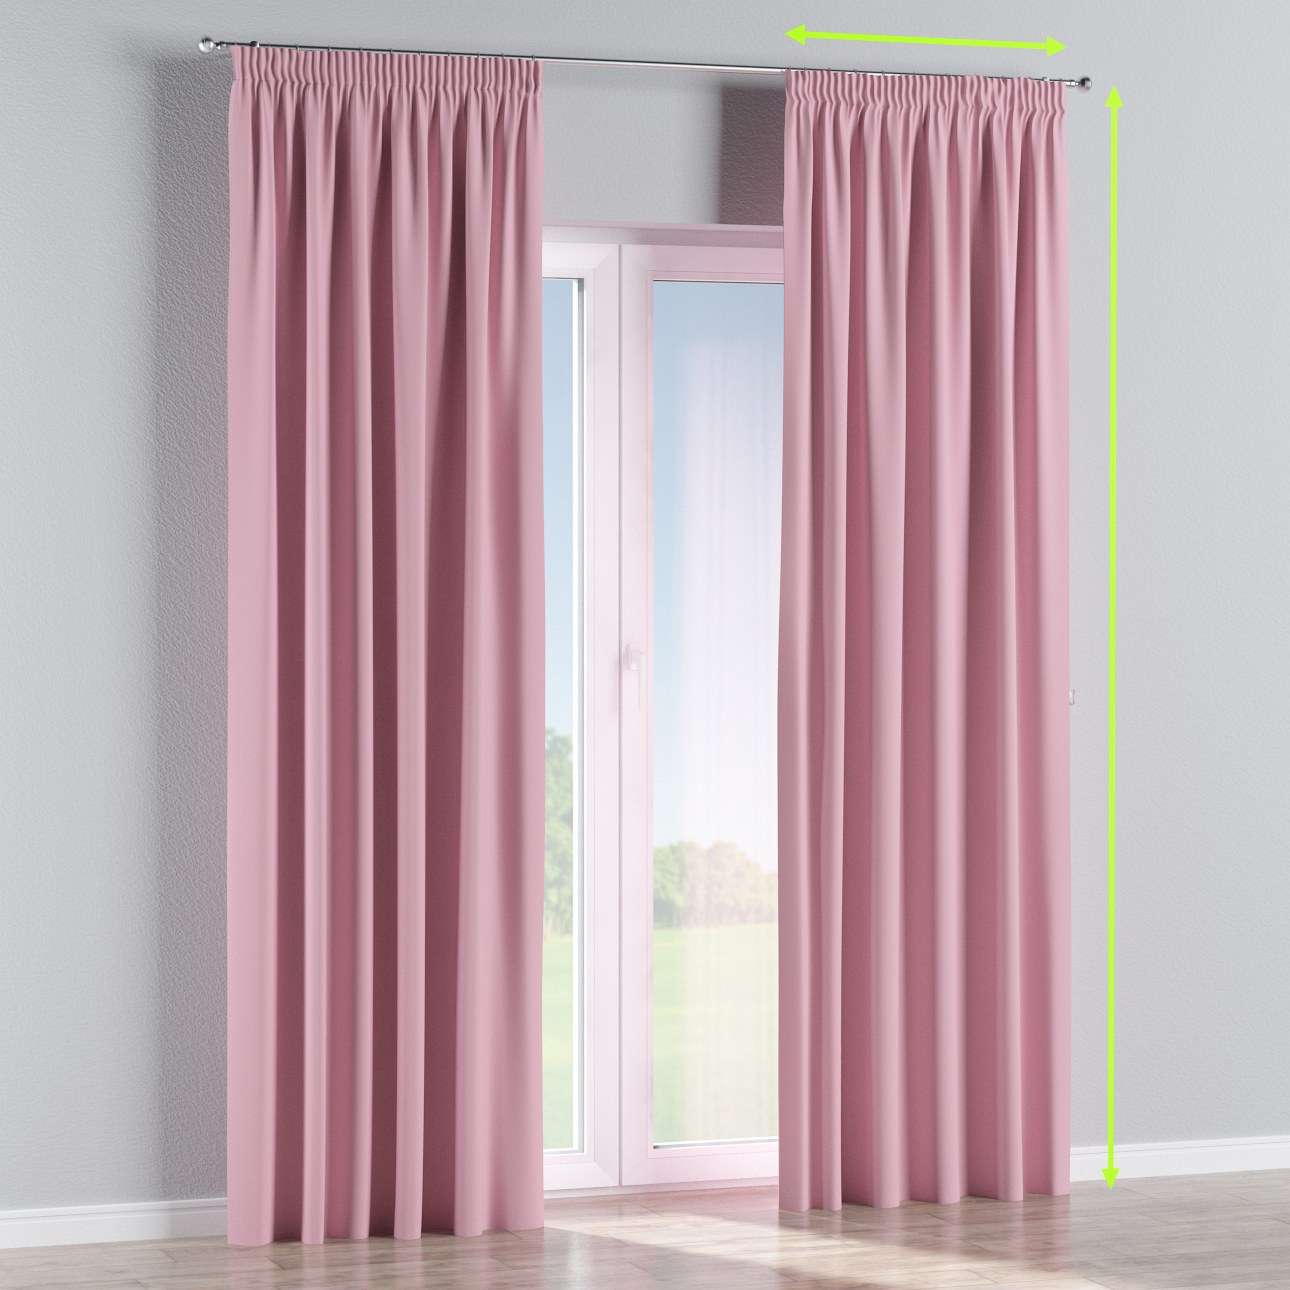 Pencil pleat curtains in collection Blackout, fabric: 269-92